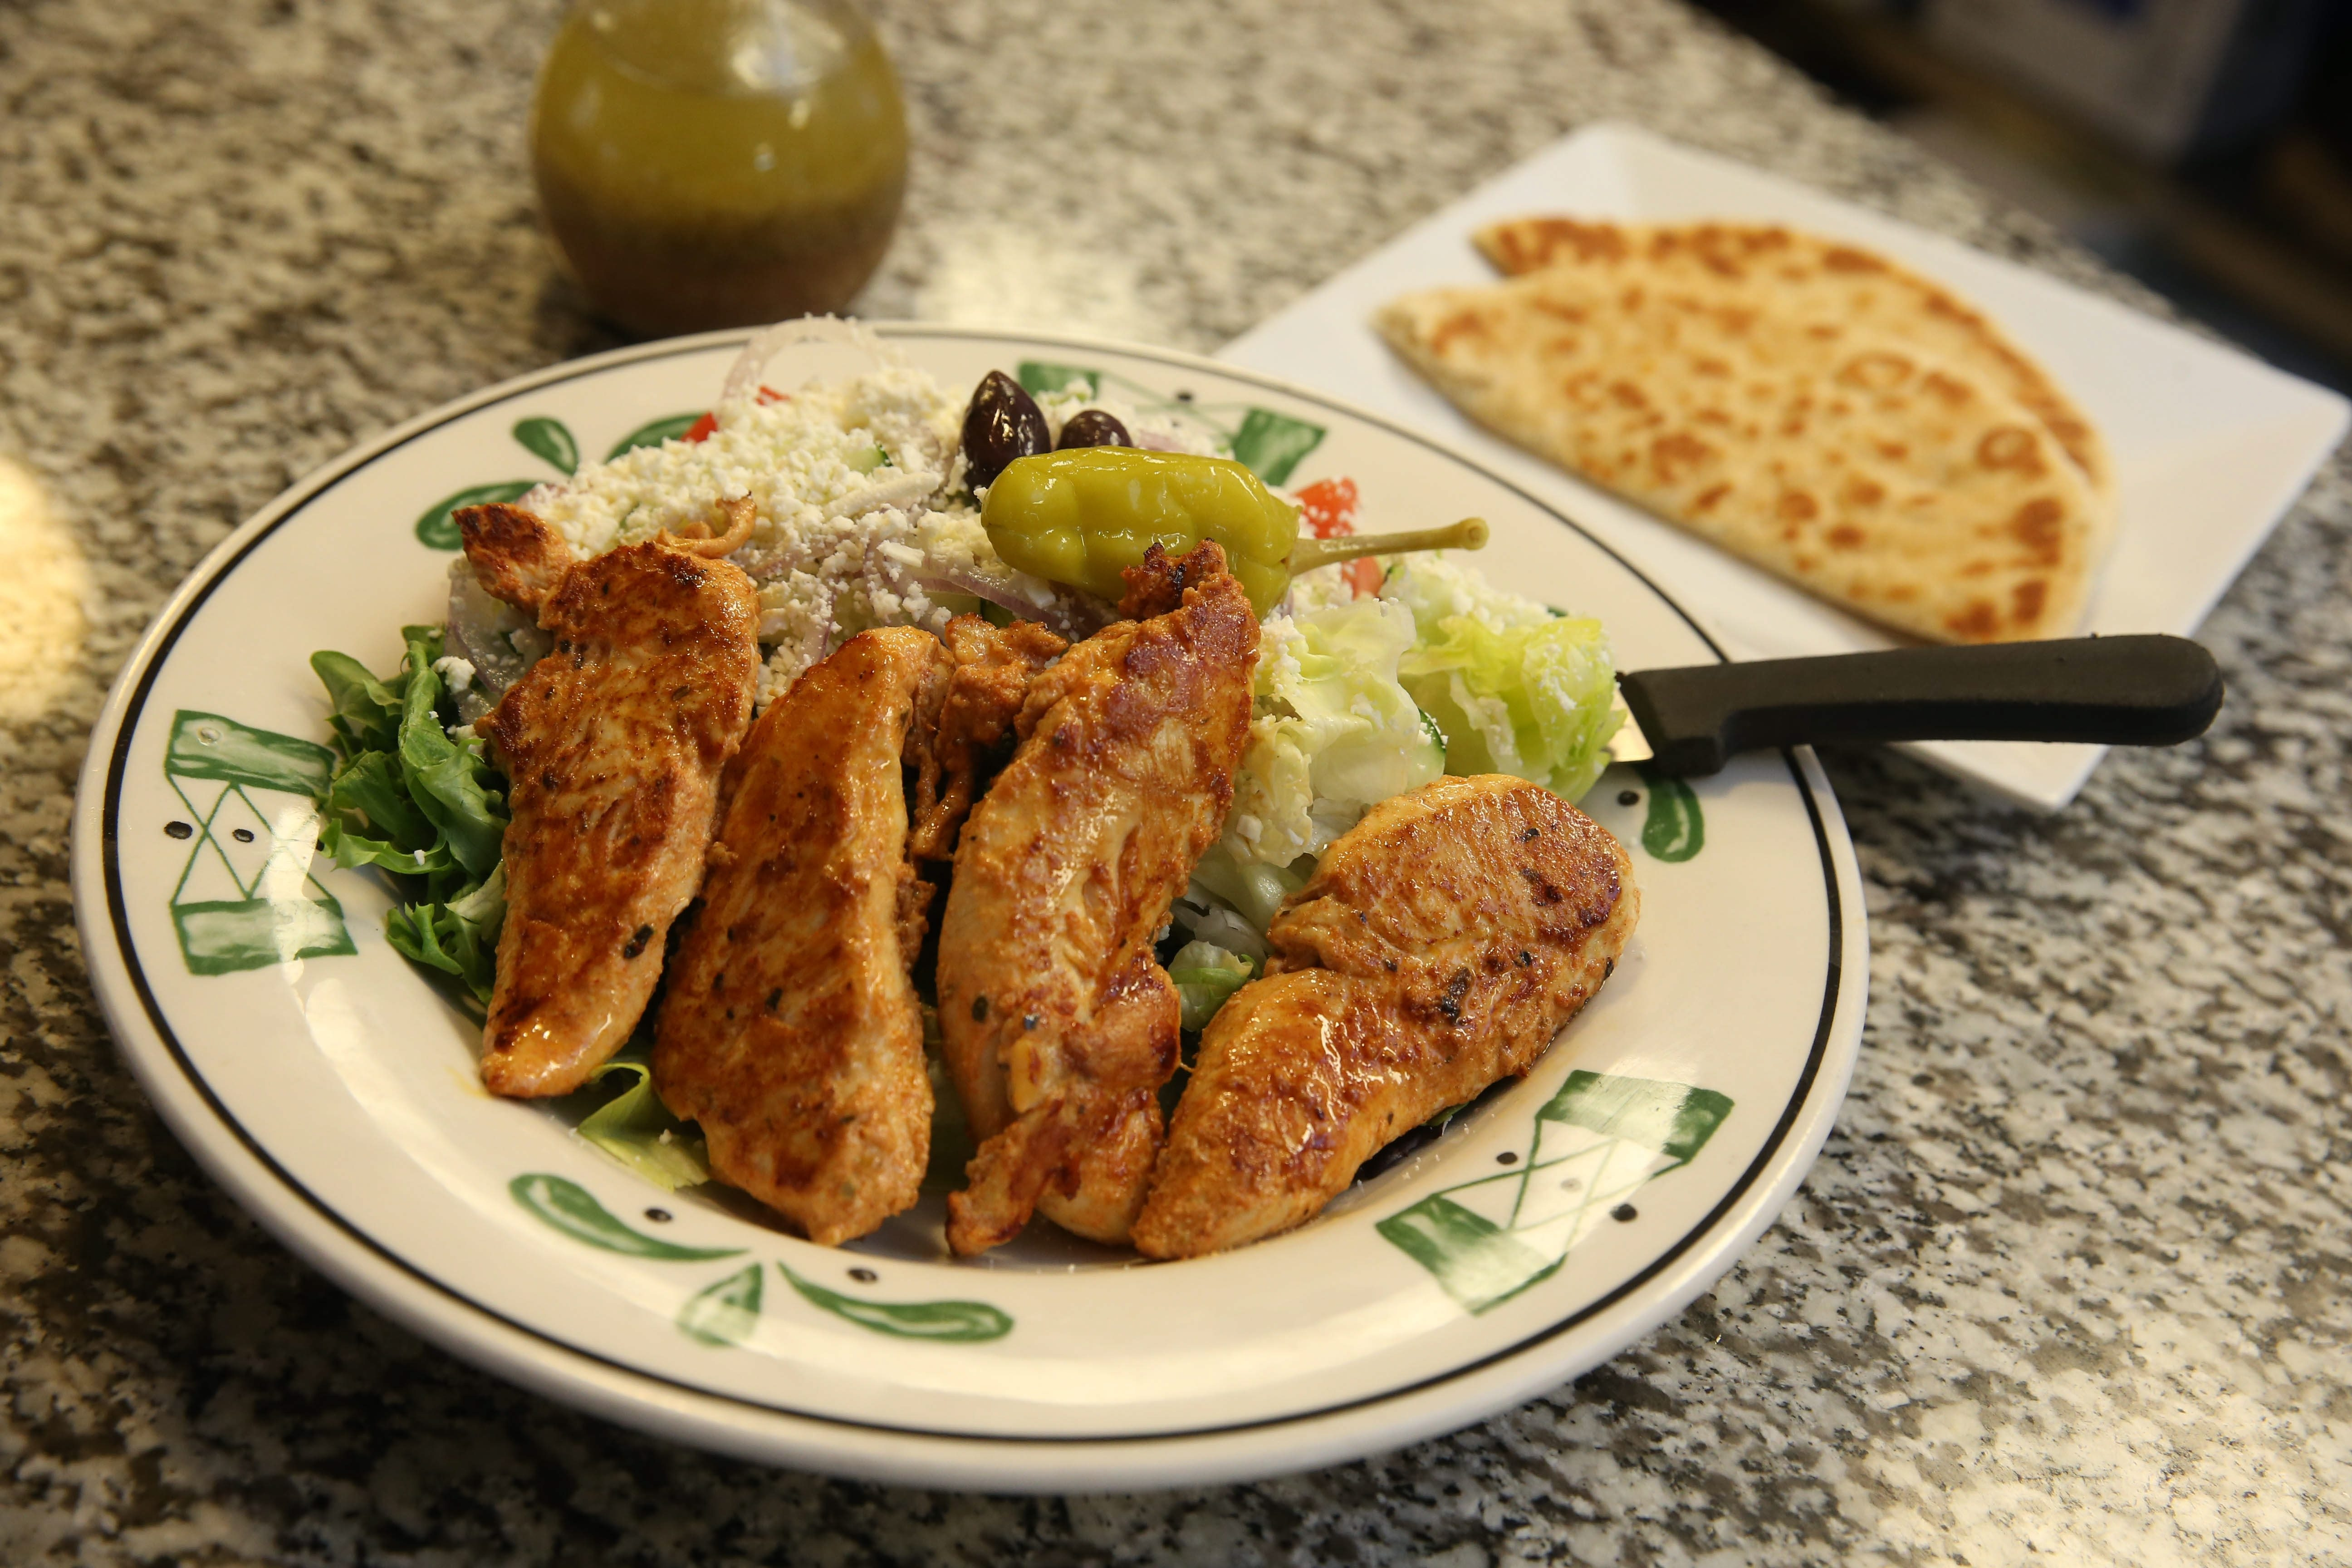 The open chicken souvlaki is one of the many Greek-American favorites available in huge portions at the Kalamata Family Restaurant.